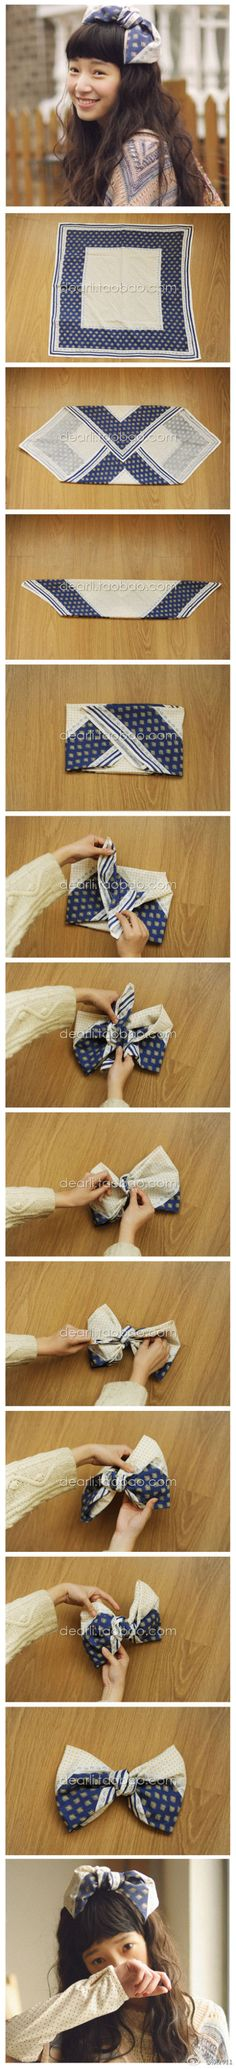 How to fold a bow